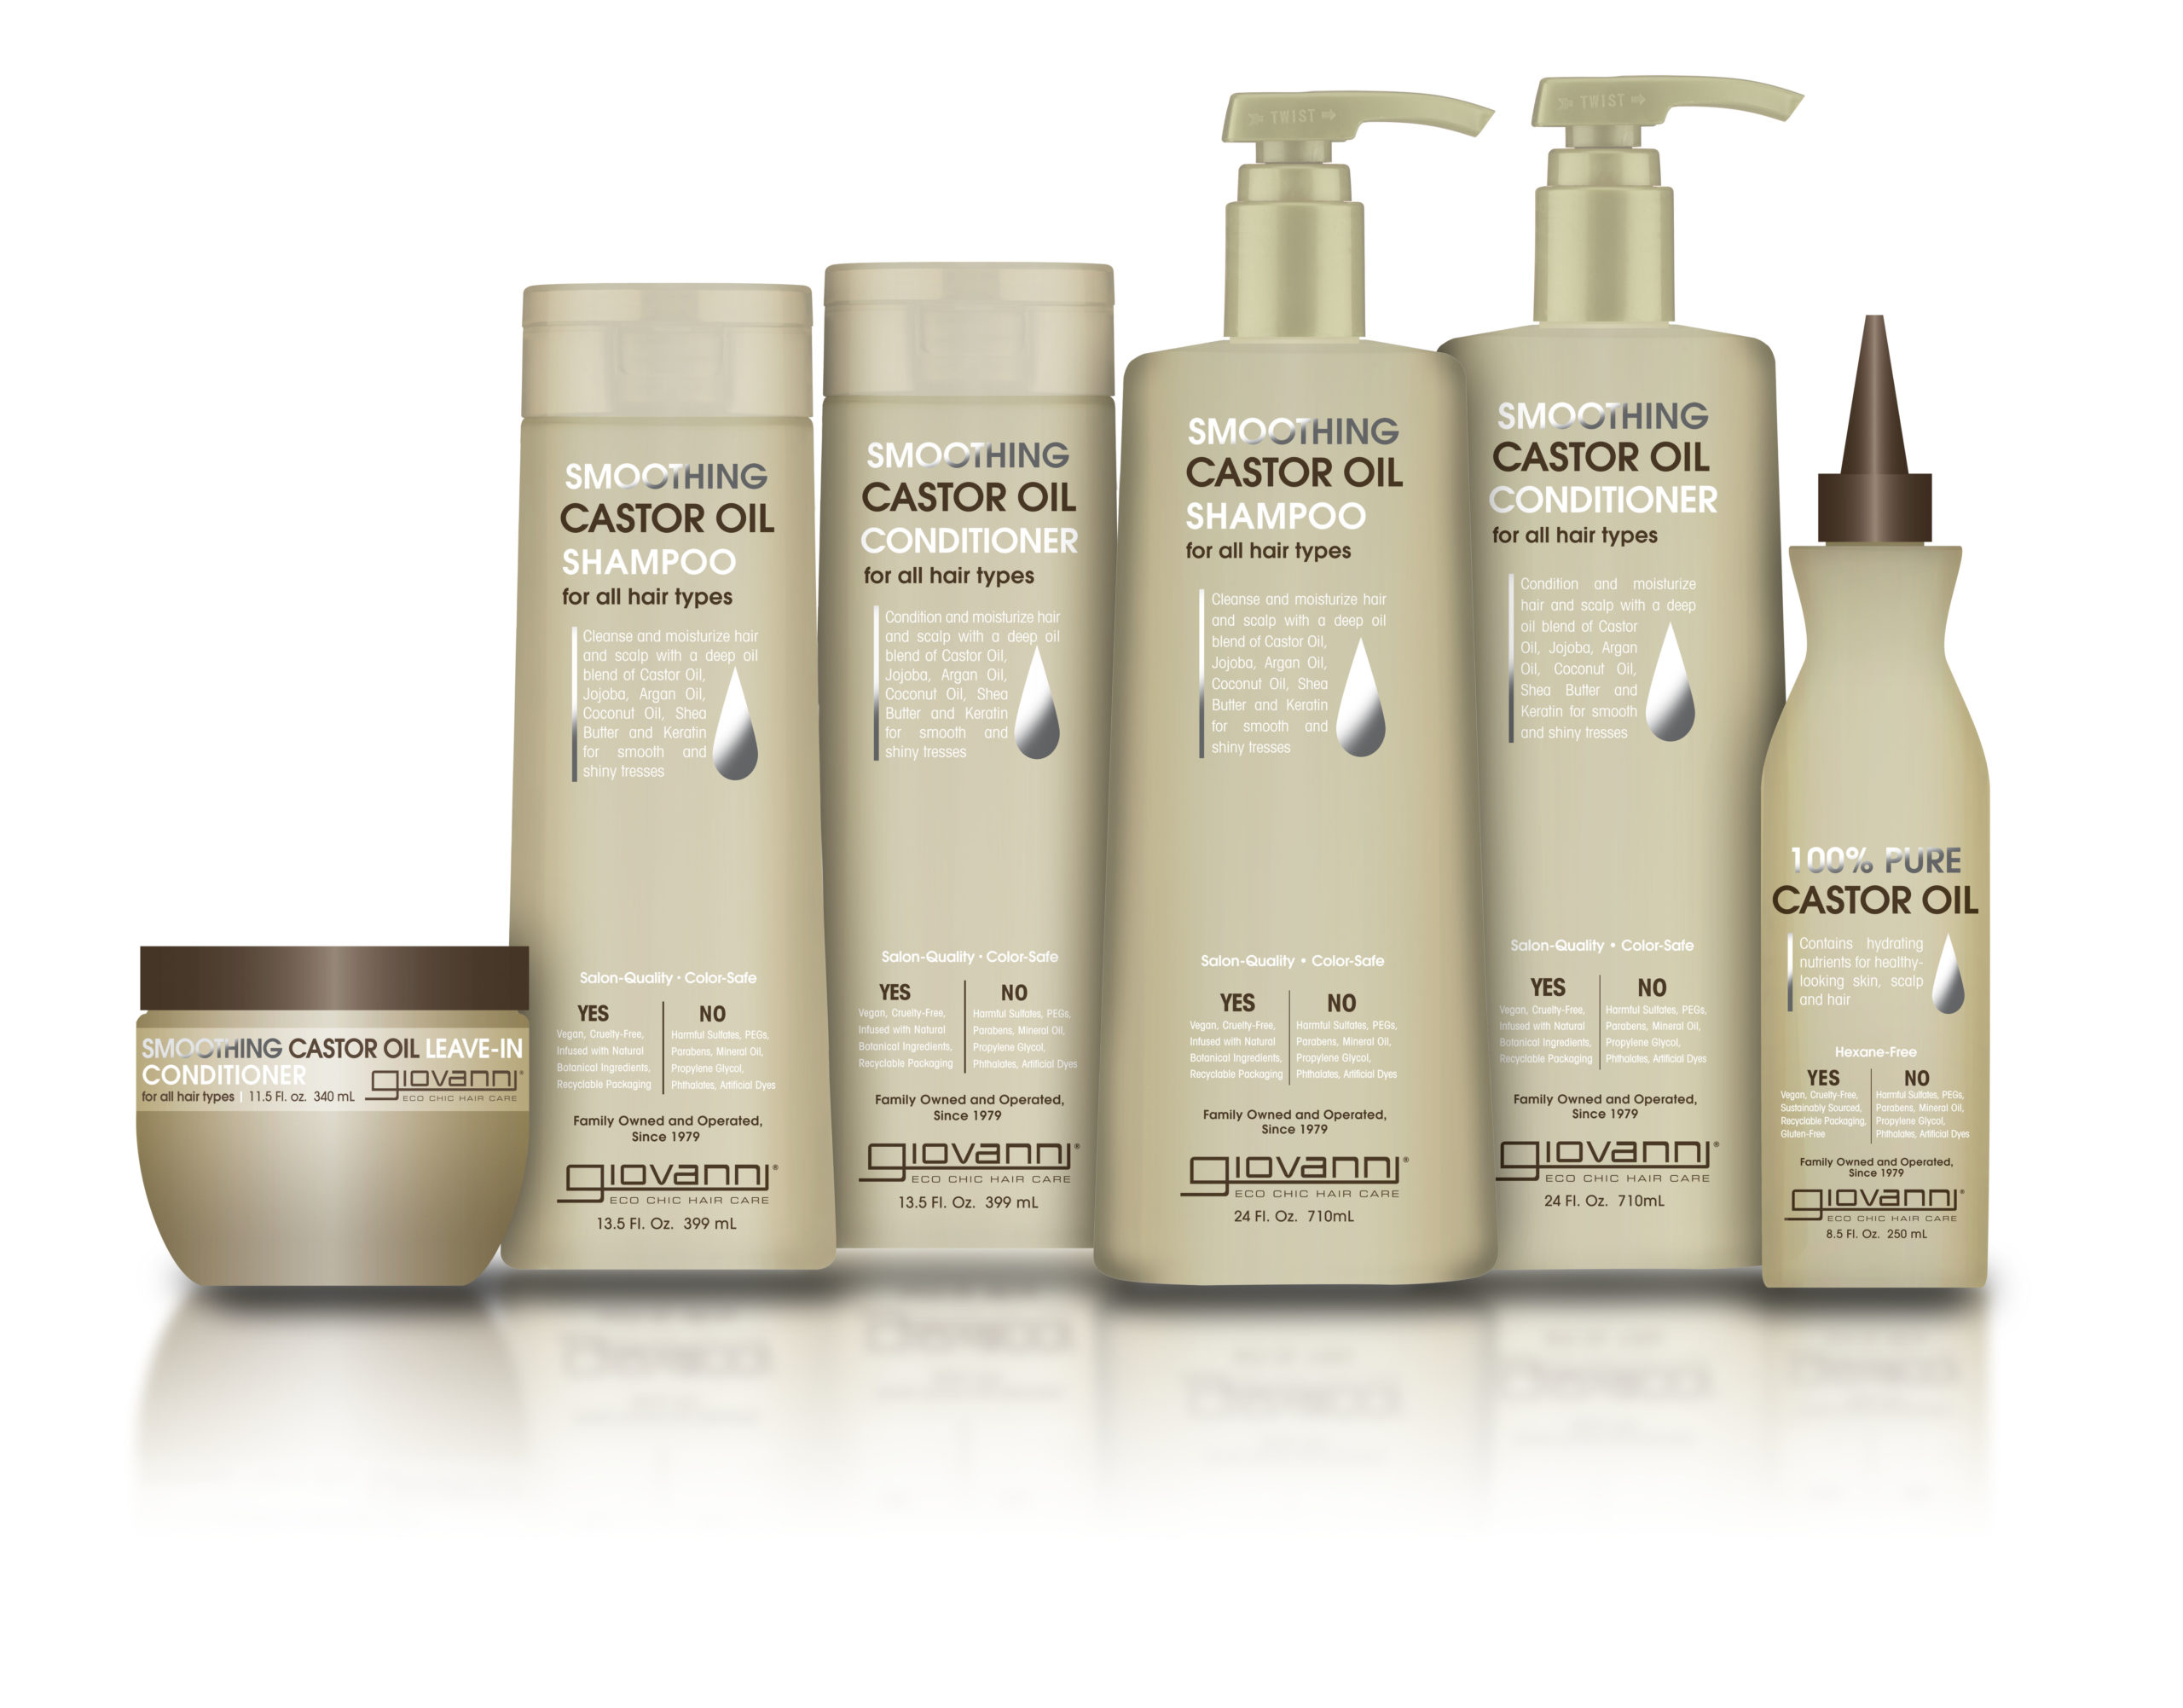 smoothing castor oil product collection